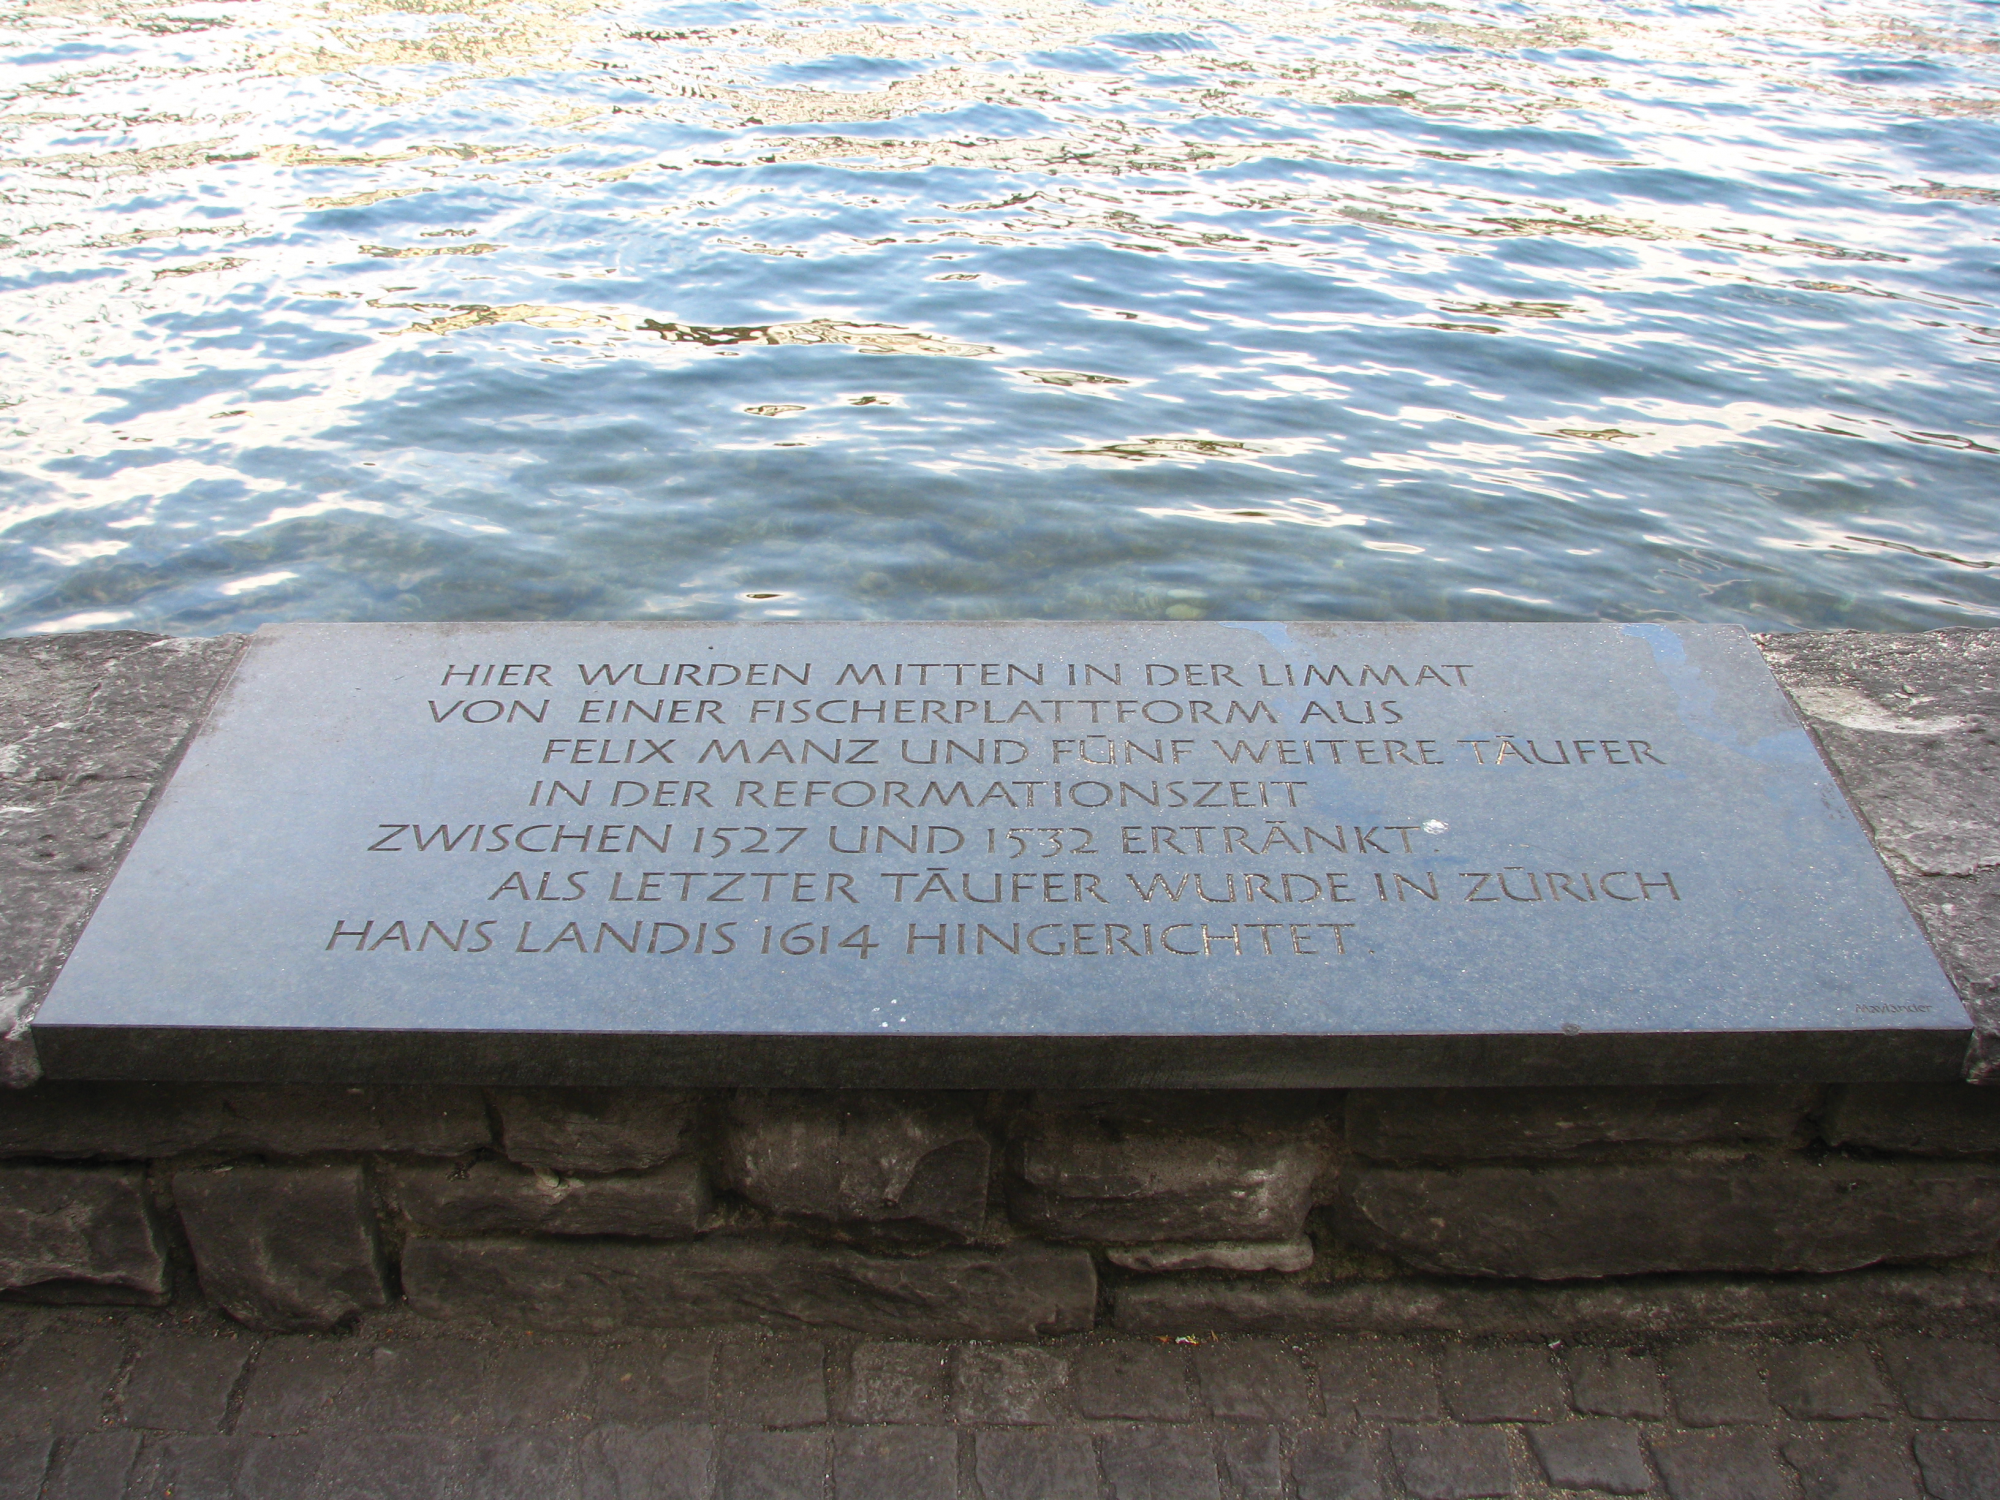 A memorial stone to Anabaptist martyrs drowned in the Limmat River in Switzerland. Photo: Roland zh, Wikimedia Commons